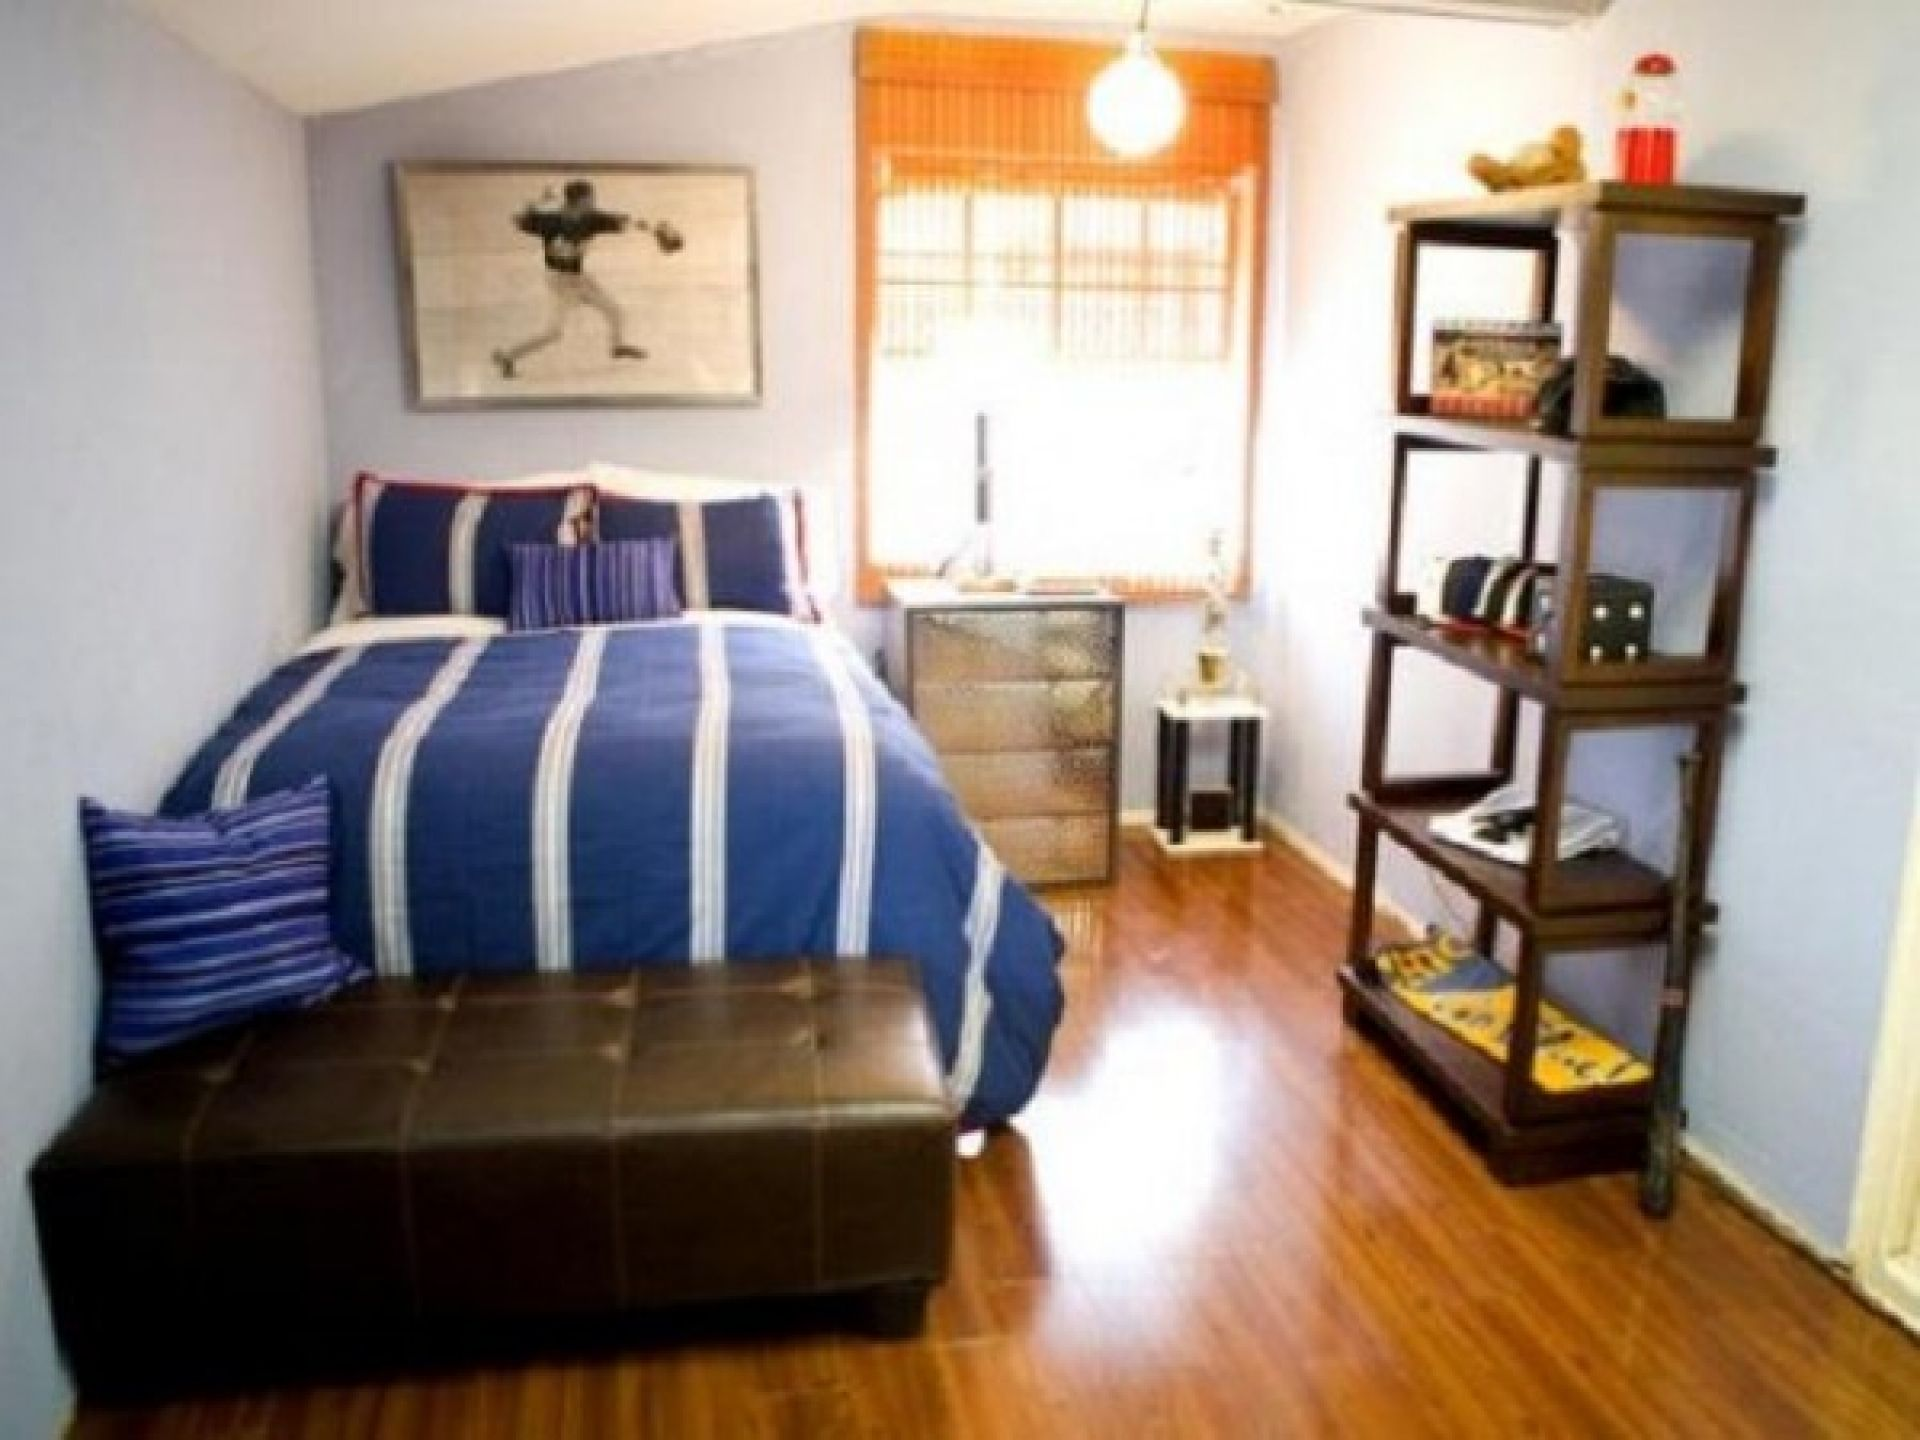 How To Design A Small Bedroom Decorating With Handmade Furnishing Bedroom Ideas As Well As Open Shelves Storage A Guy Dorm Rooms Cool Dorm Rooms Simple Bedroom